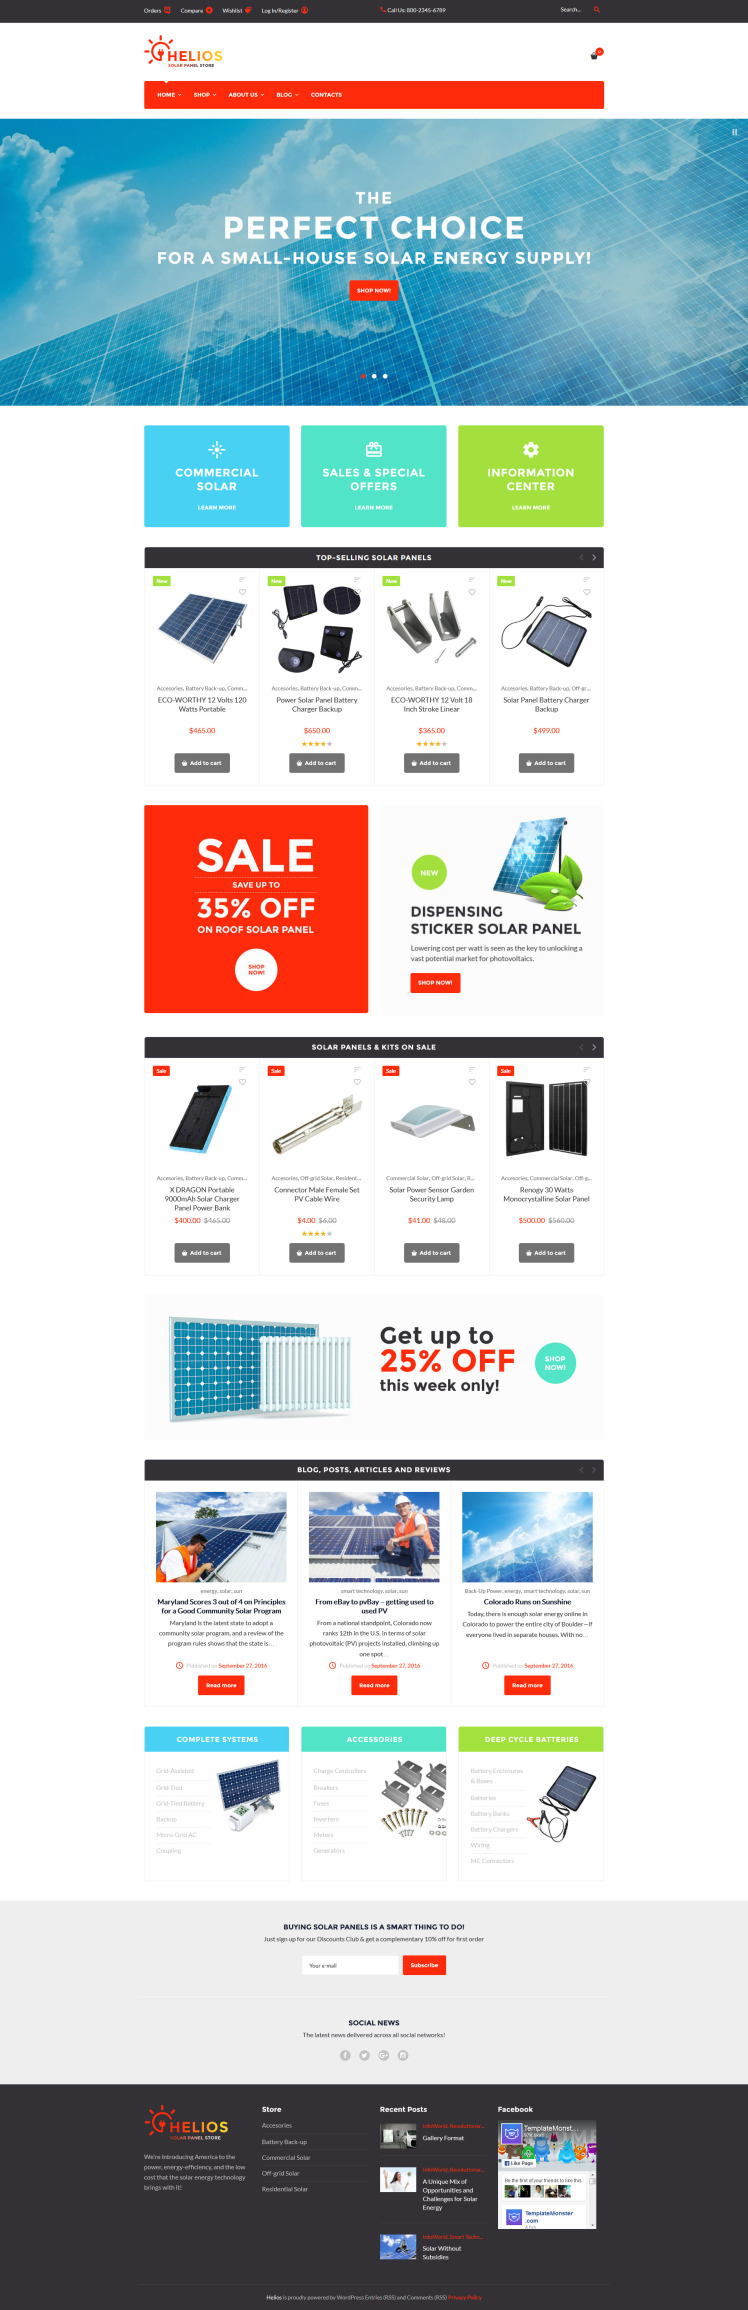 Helios Solar Panels and Accessories Store WooCommerce Theme